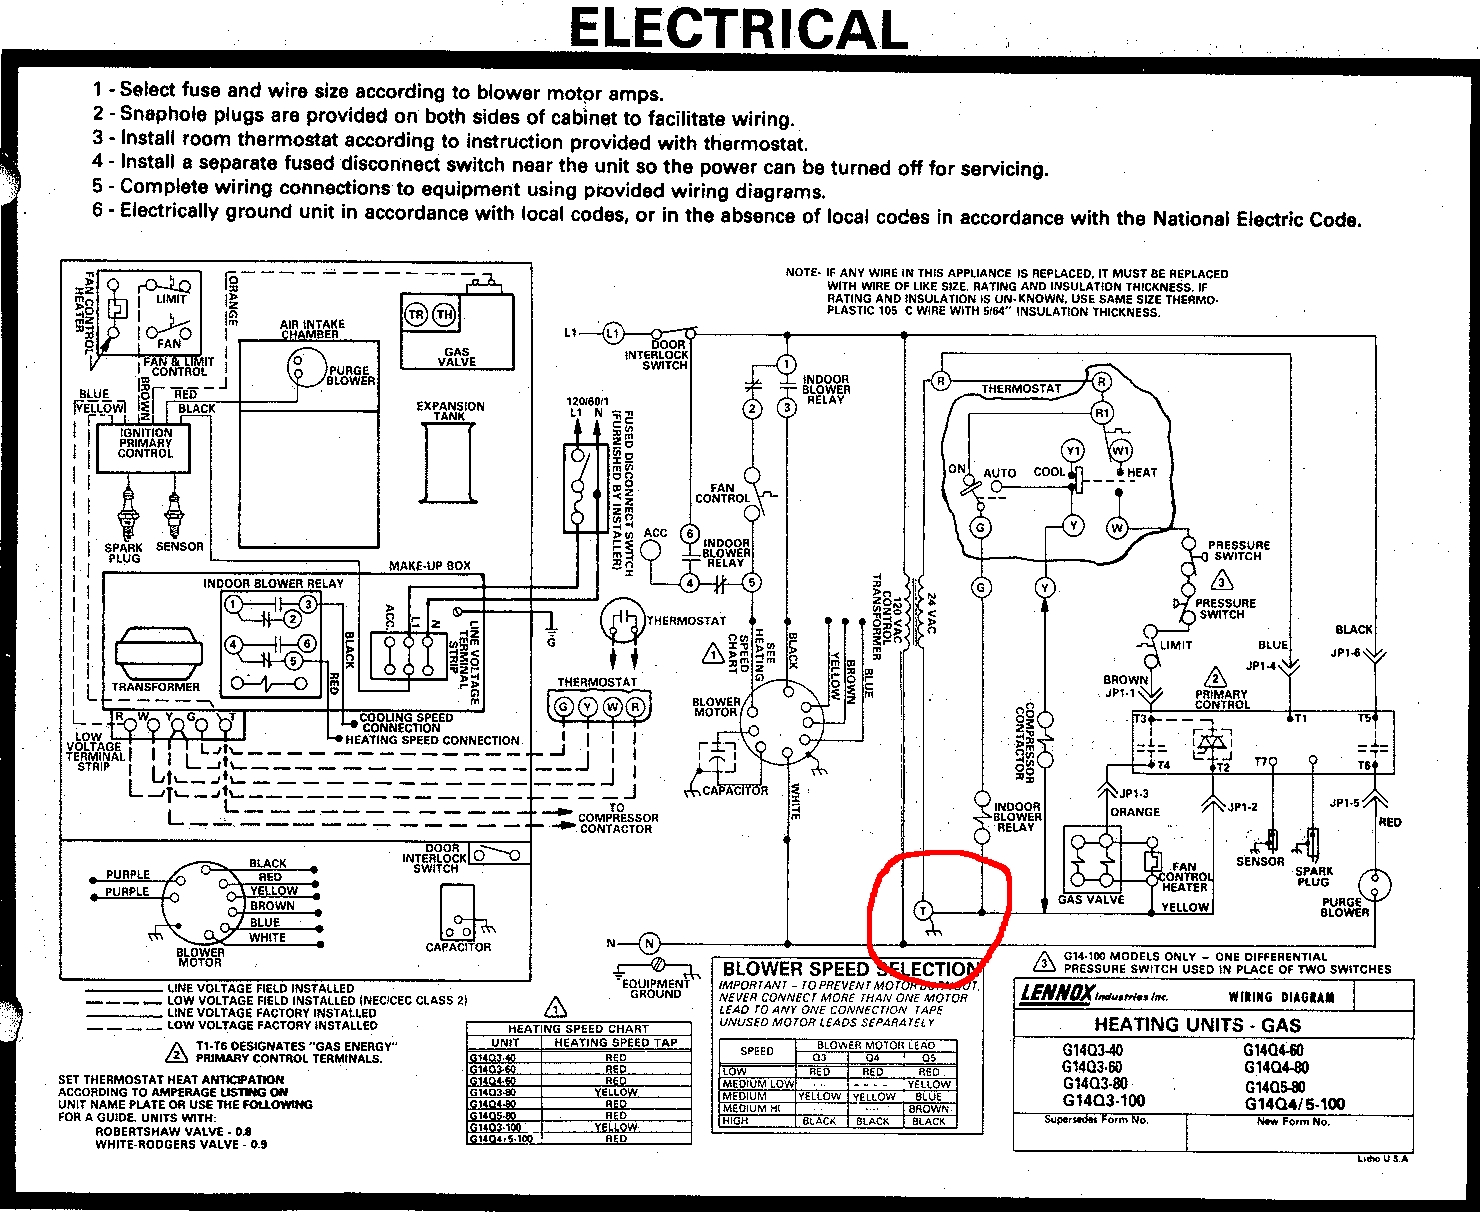 Can I Use The T Terminal In My Furnace As The C For A Wifi - Hvac Thermostat Wiring Diagram